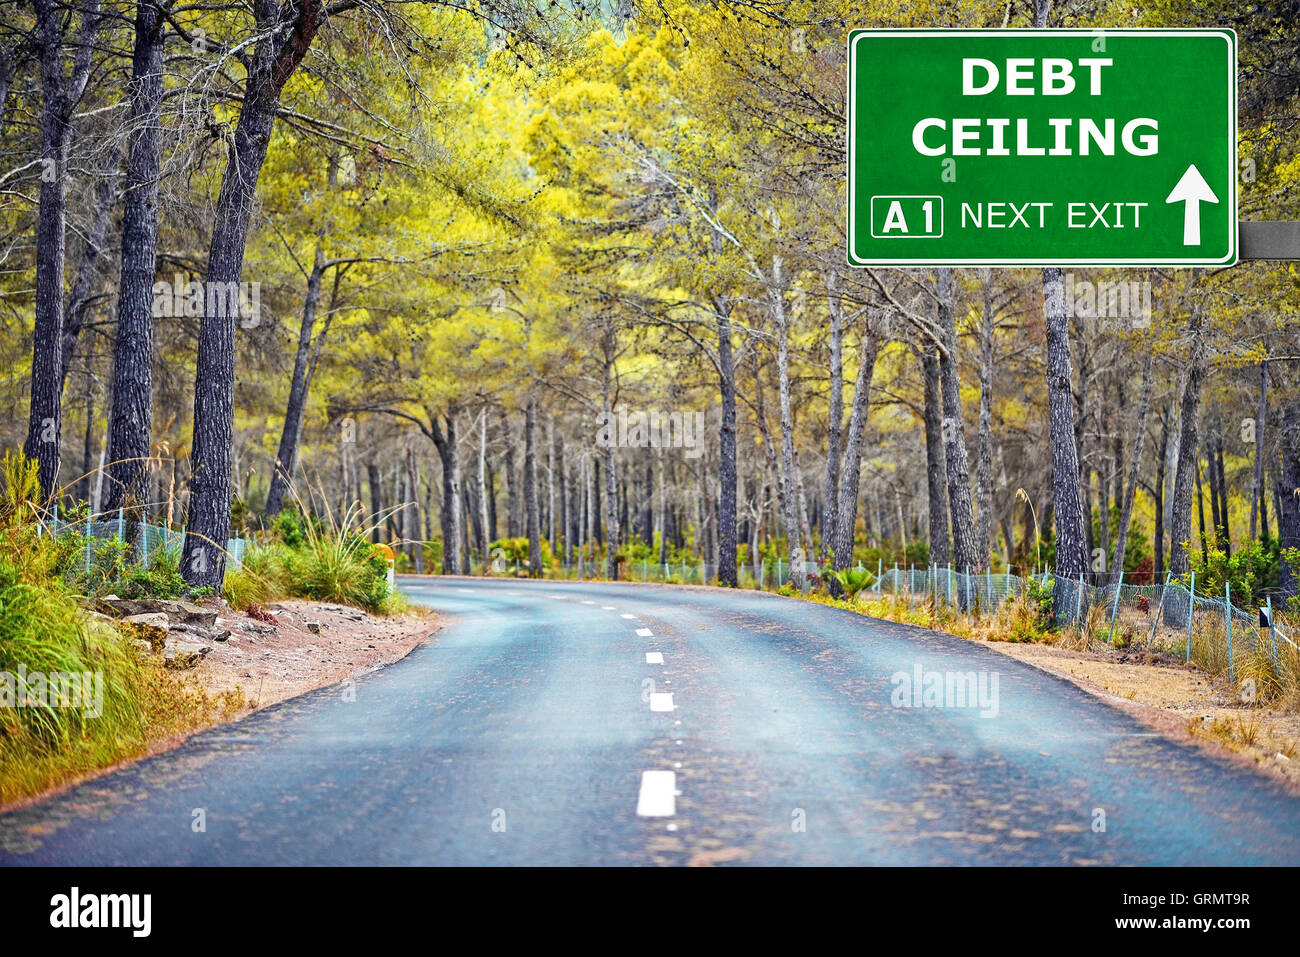 DEBT CEILING road sign against clear blue sky - Stock Image